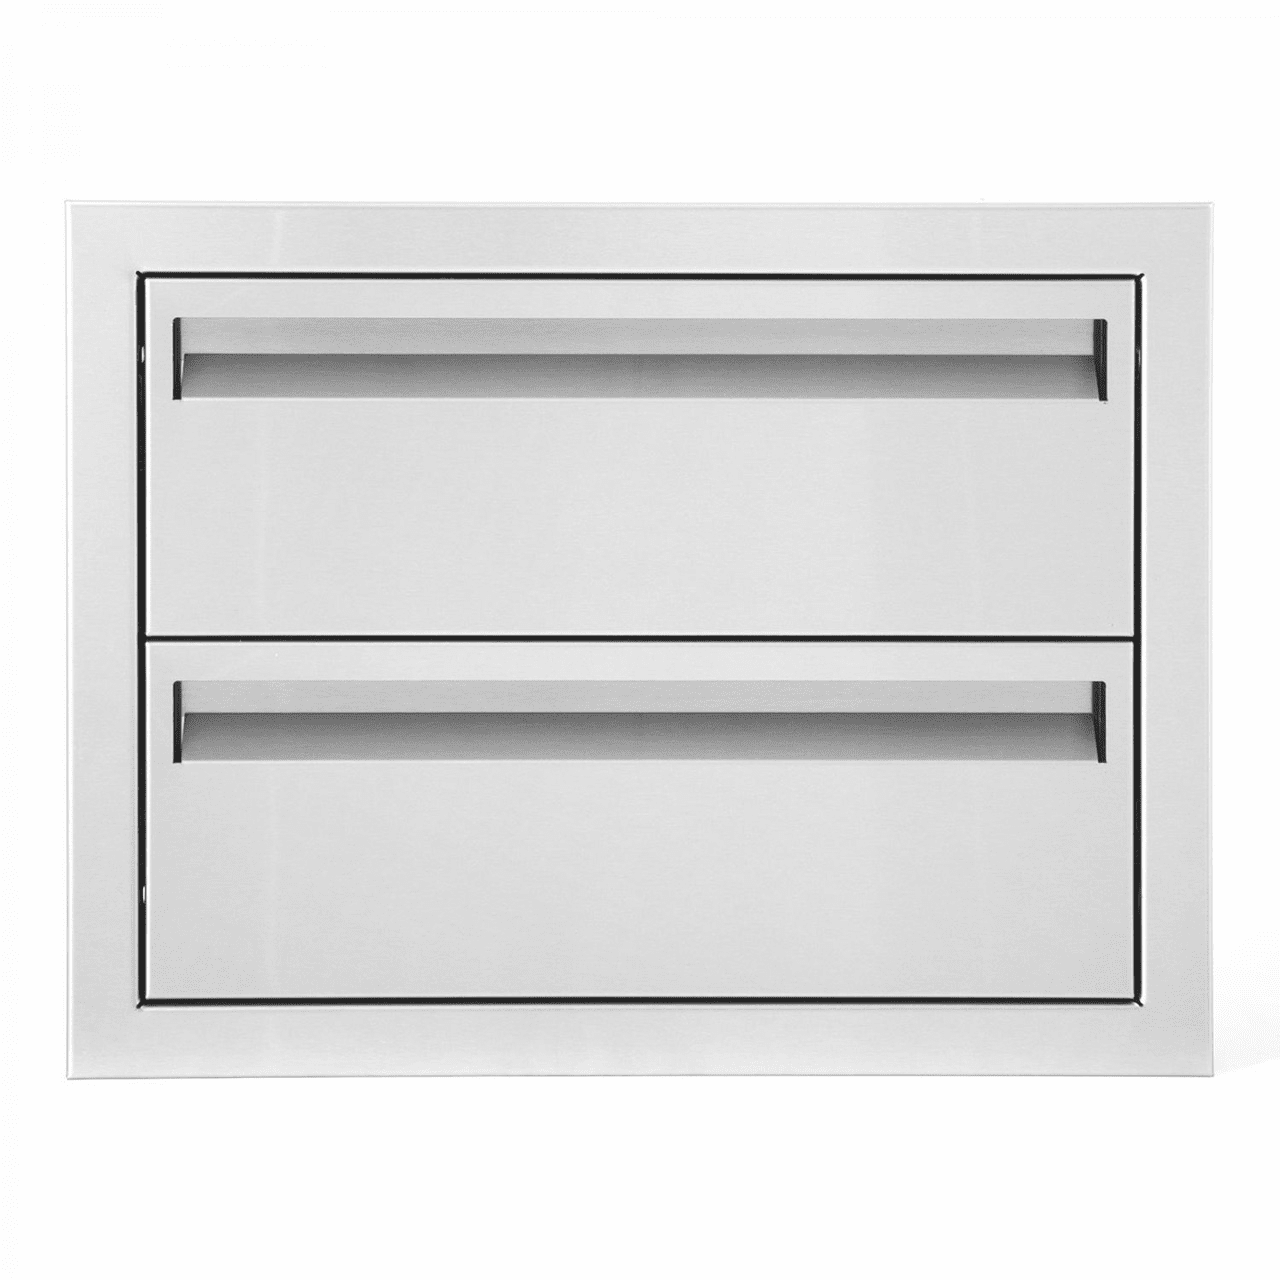 PCM 301 Series 2 Drawer Stainless Steel